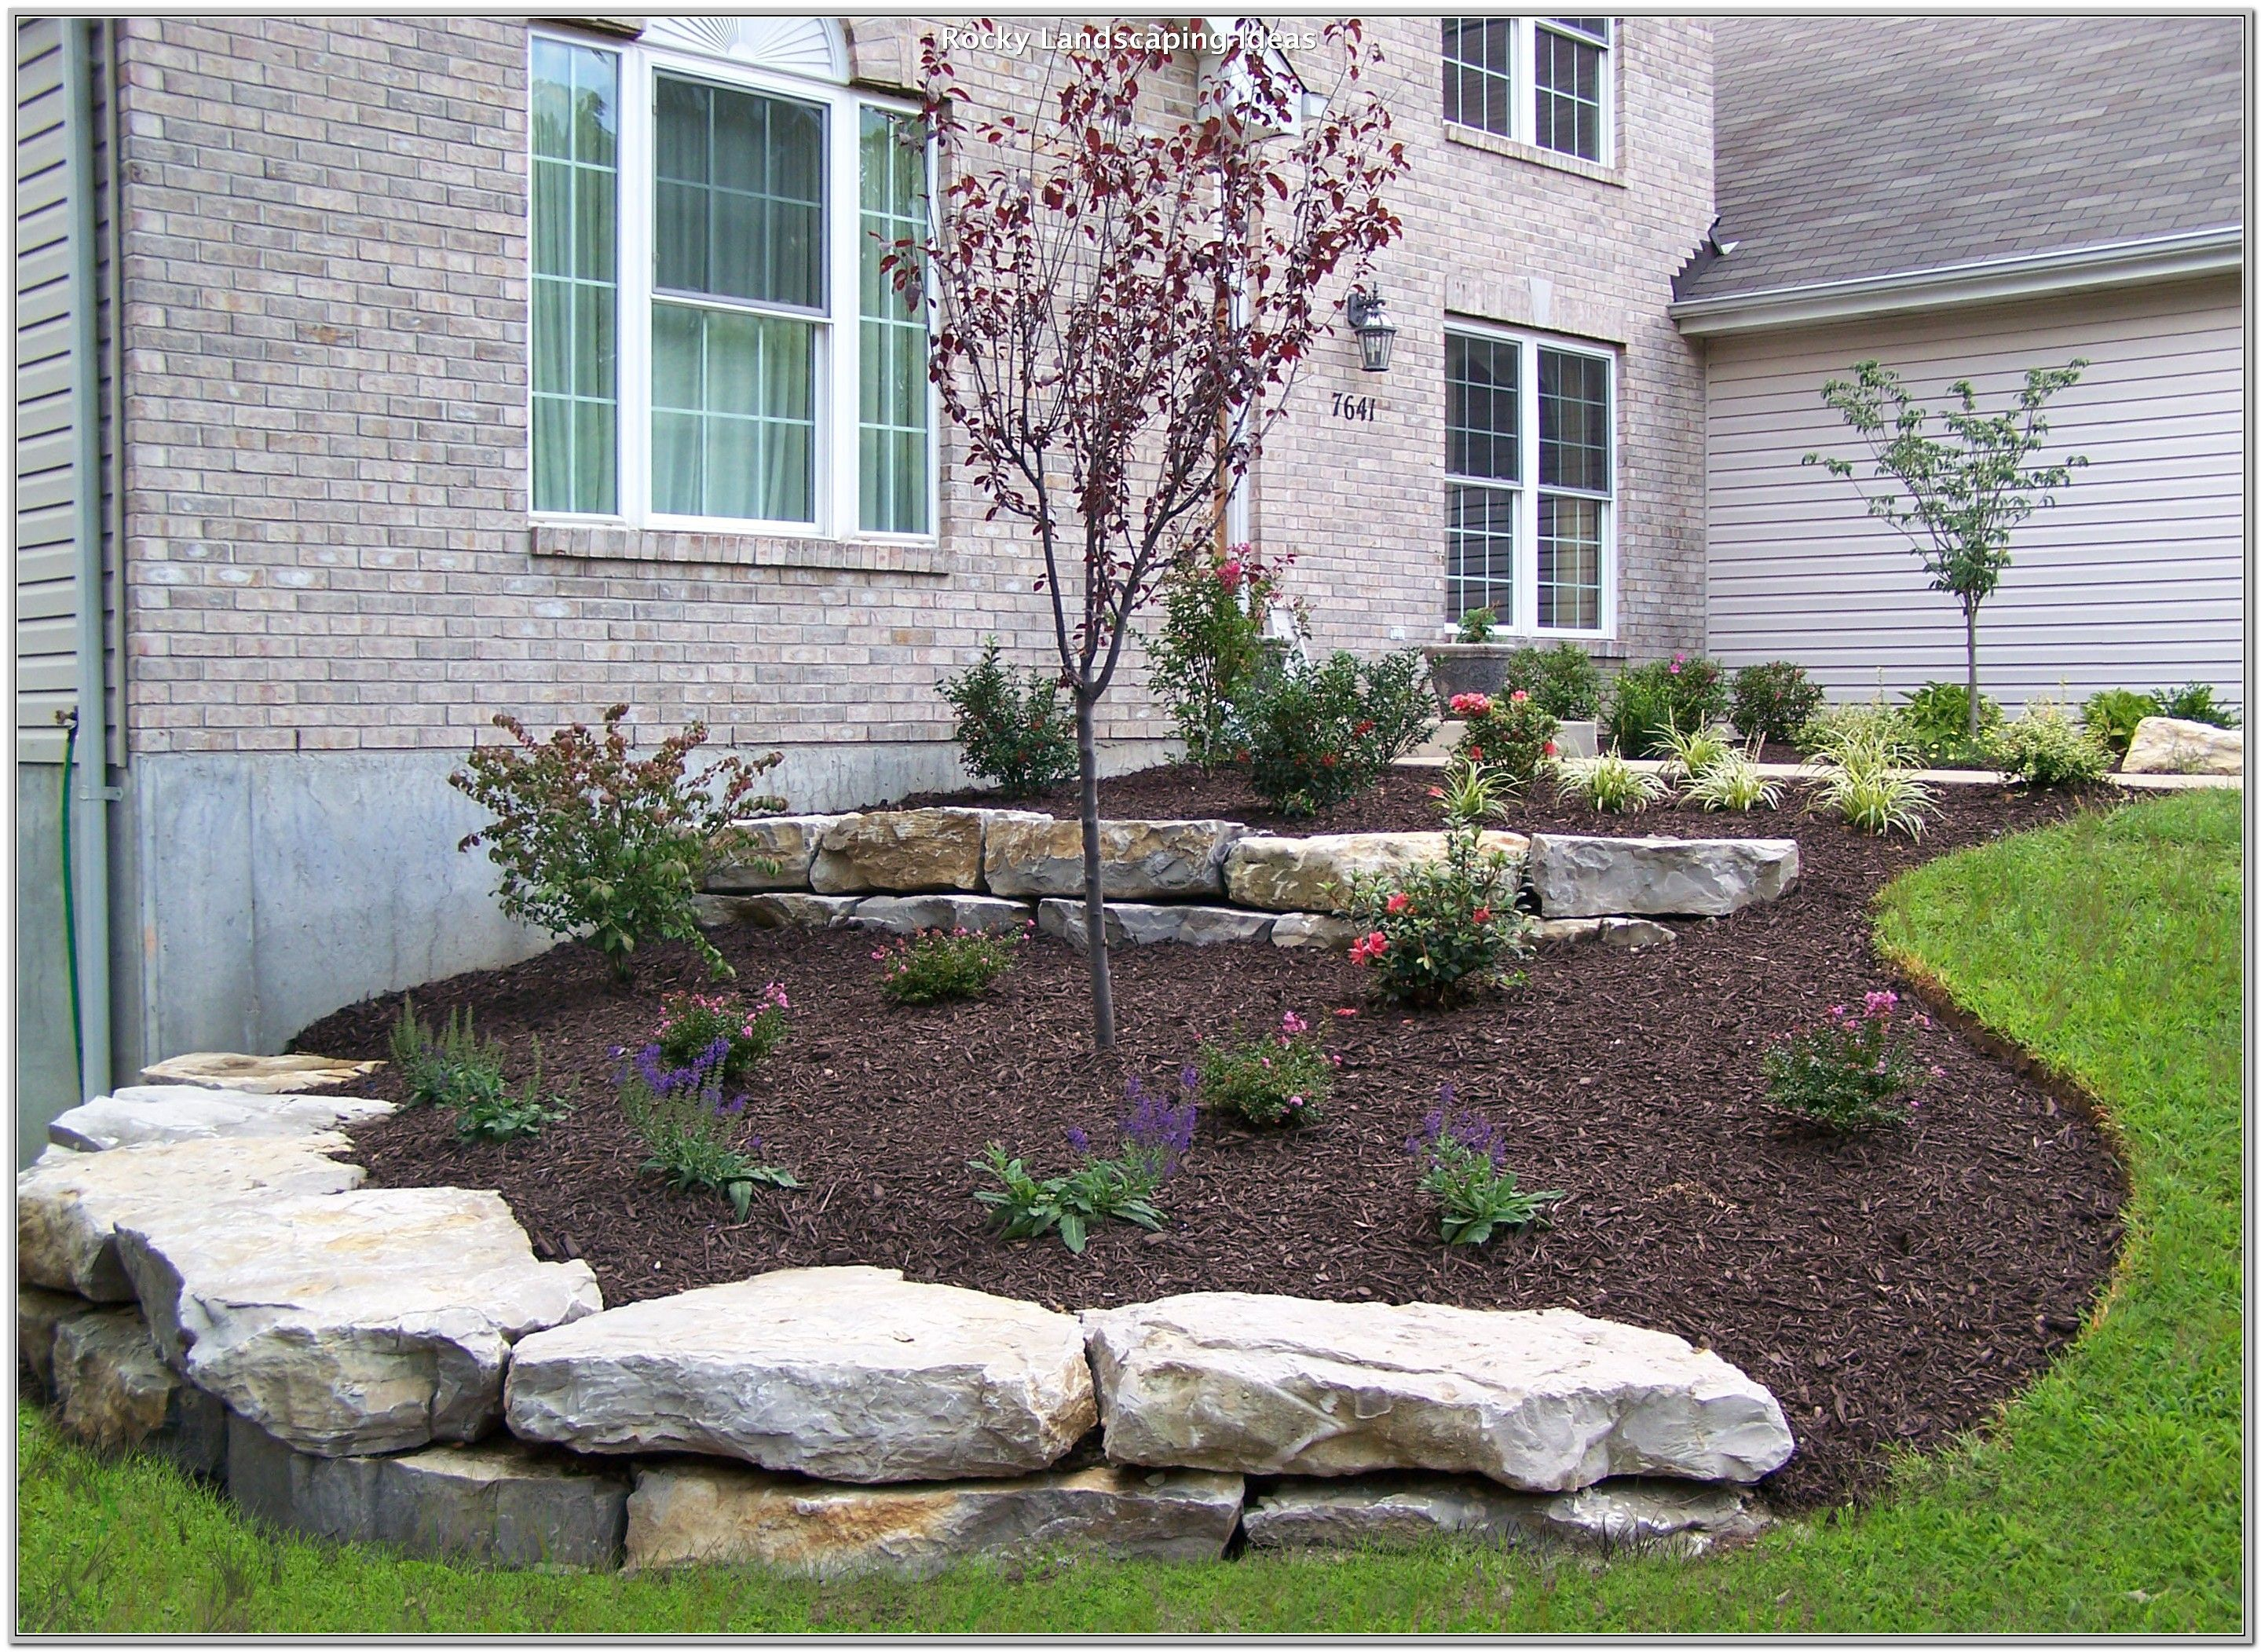 Is Landscaping Your New Found Hobby Landscaping Lovers Front Yard Landscaping Design Landscaping Retaining Walls Small Front Yard Landscaping